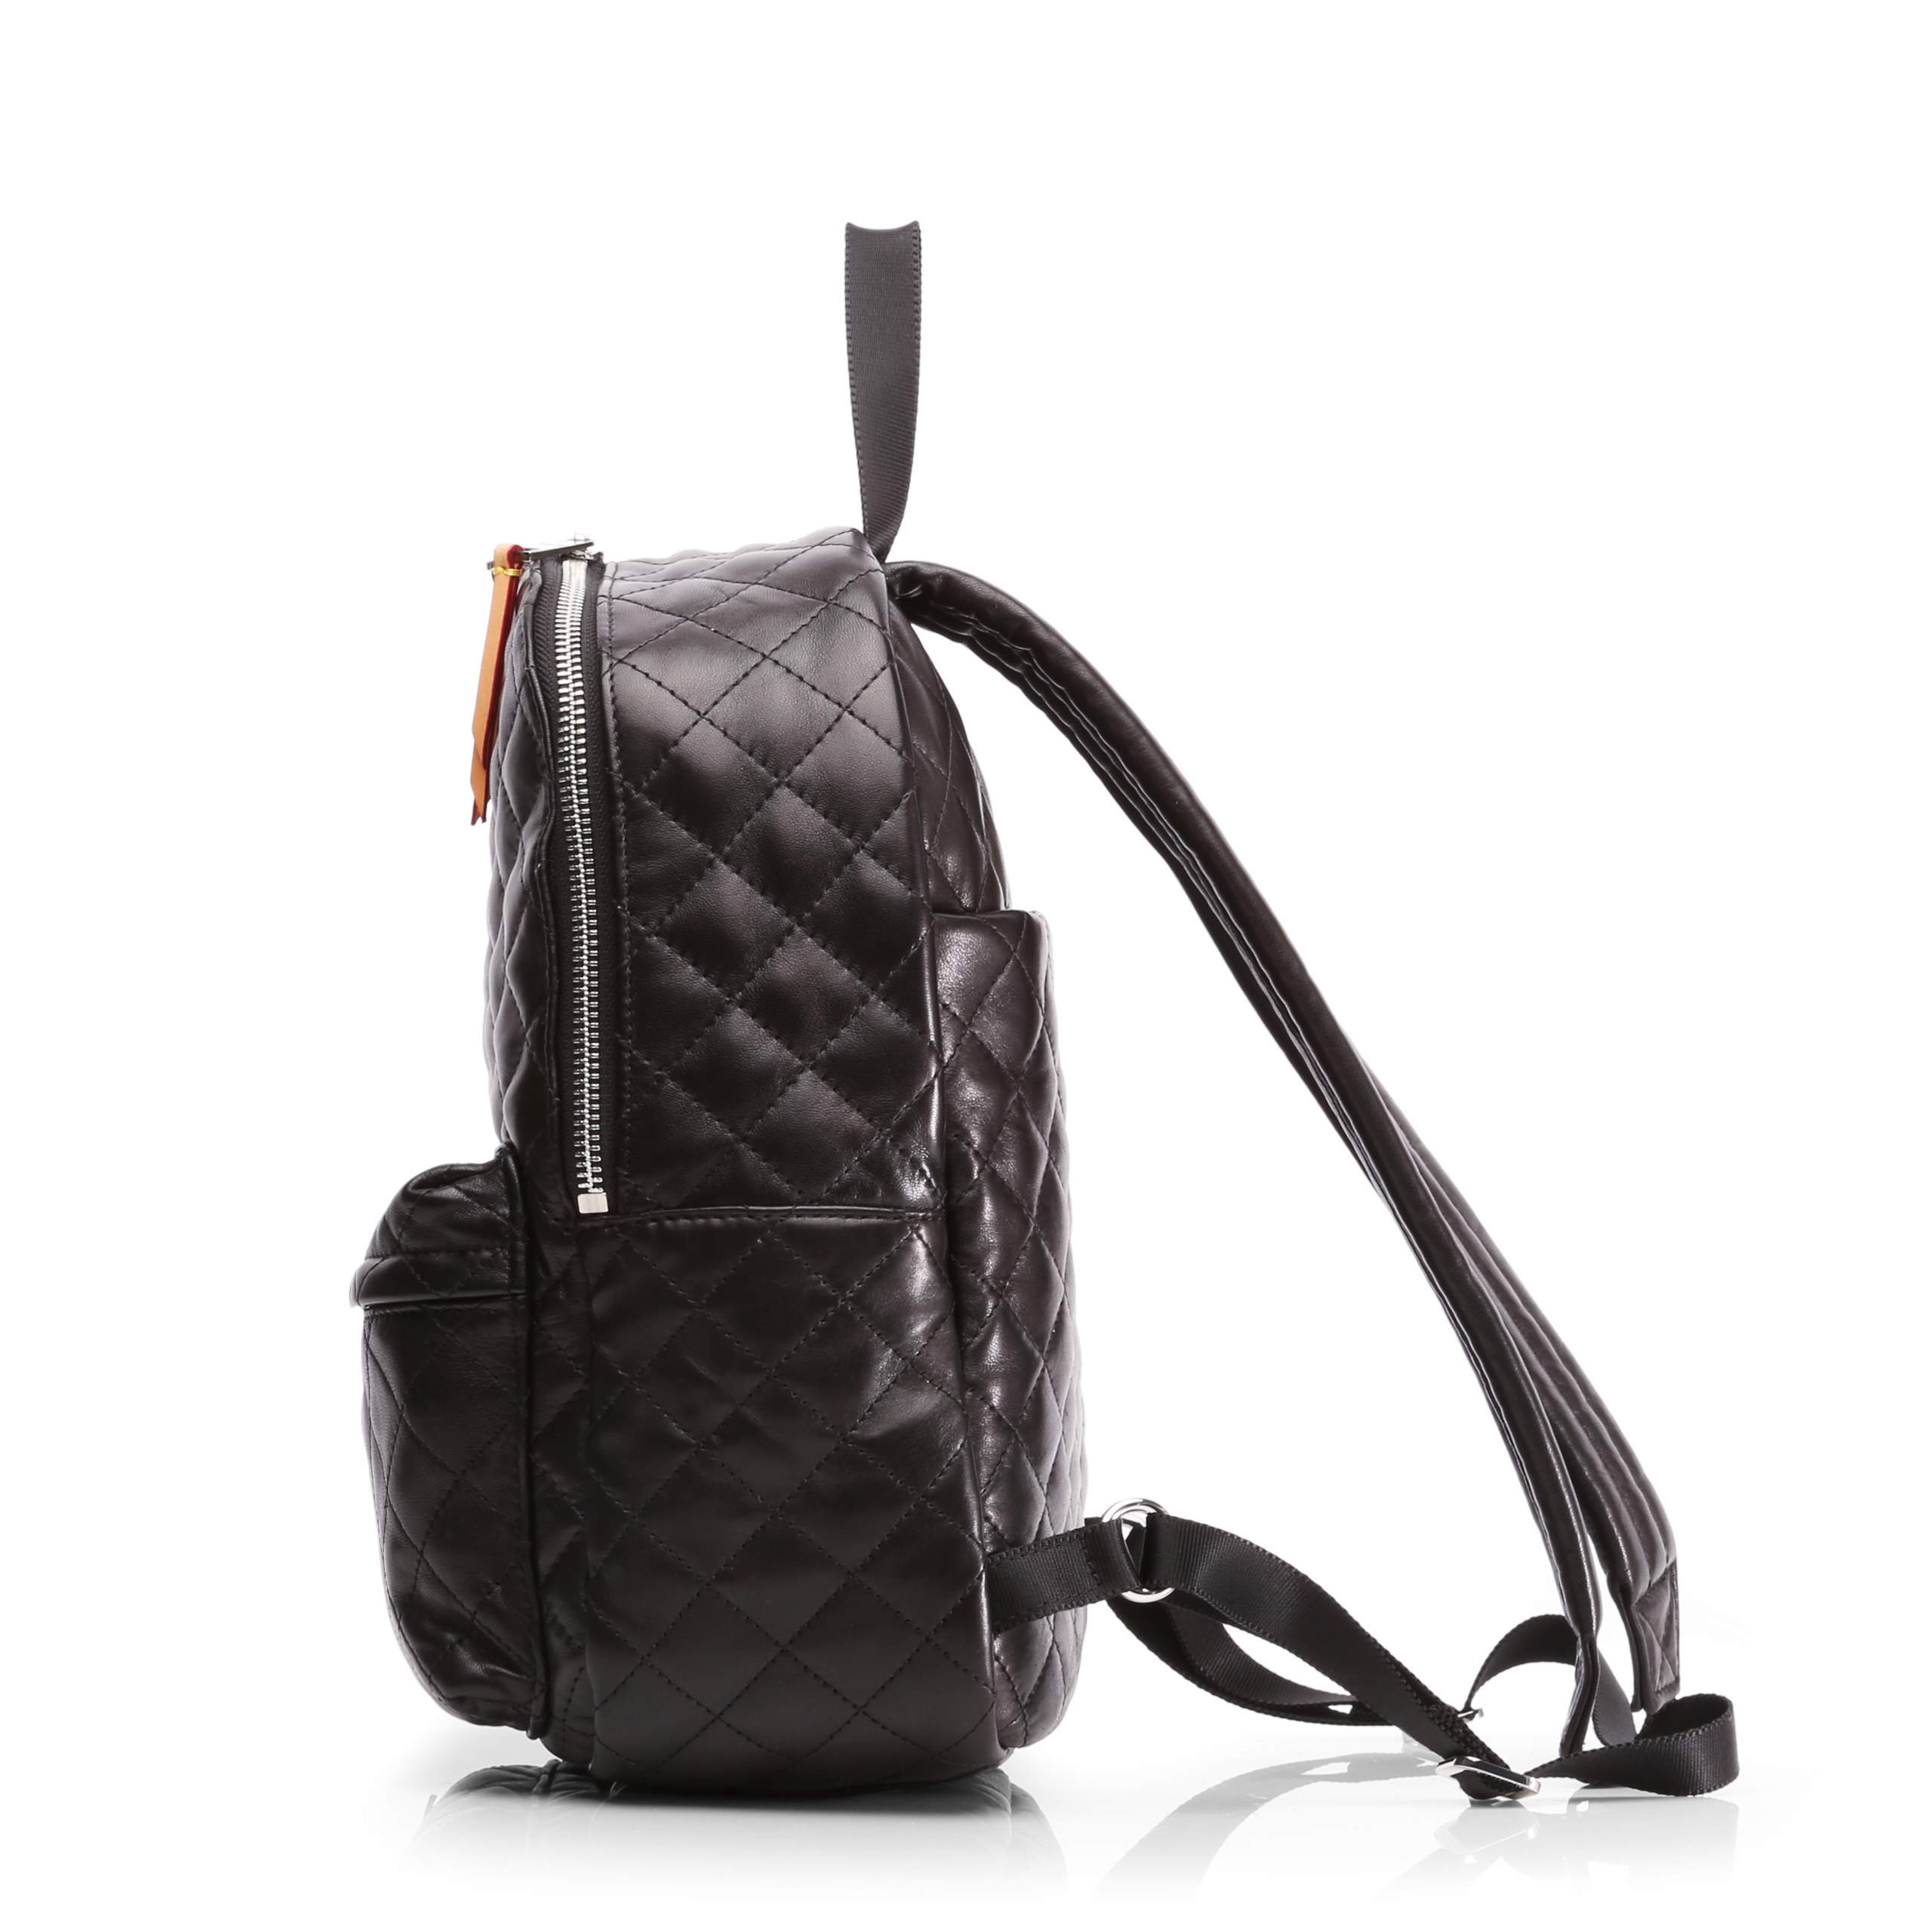 Small Metro Backpack - Black Quilted Leather (5841153) in color Black Leather